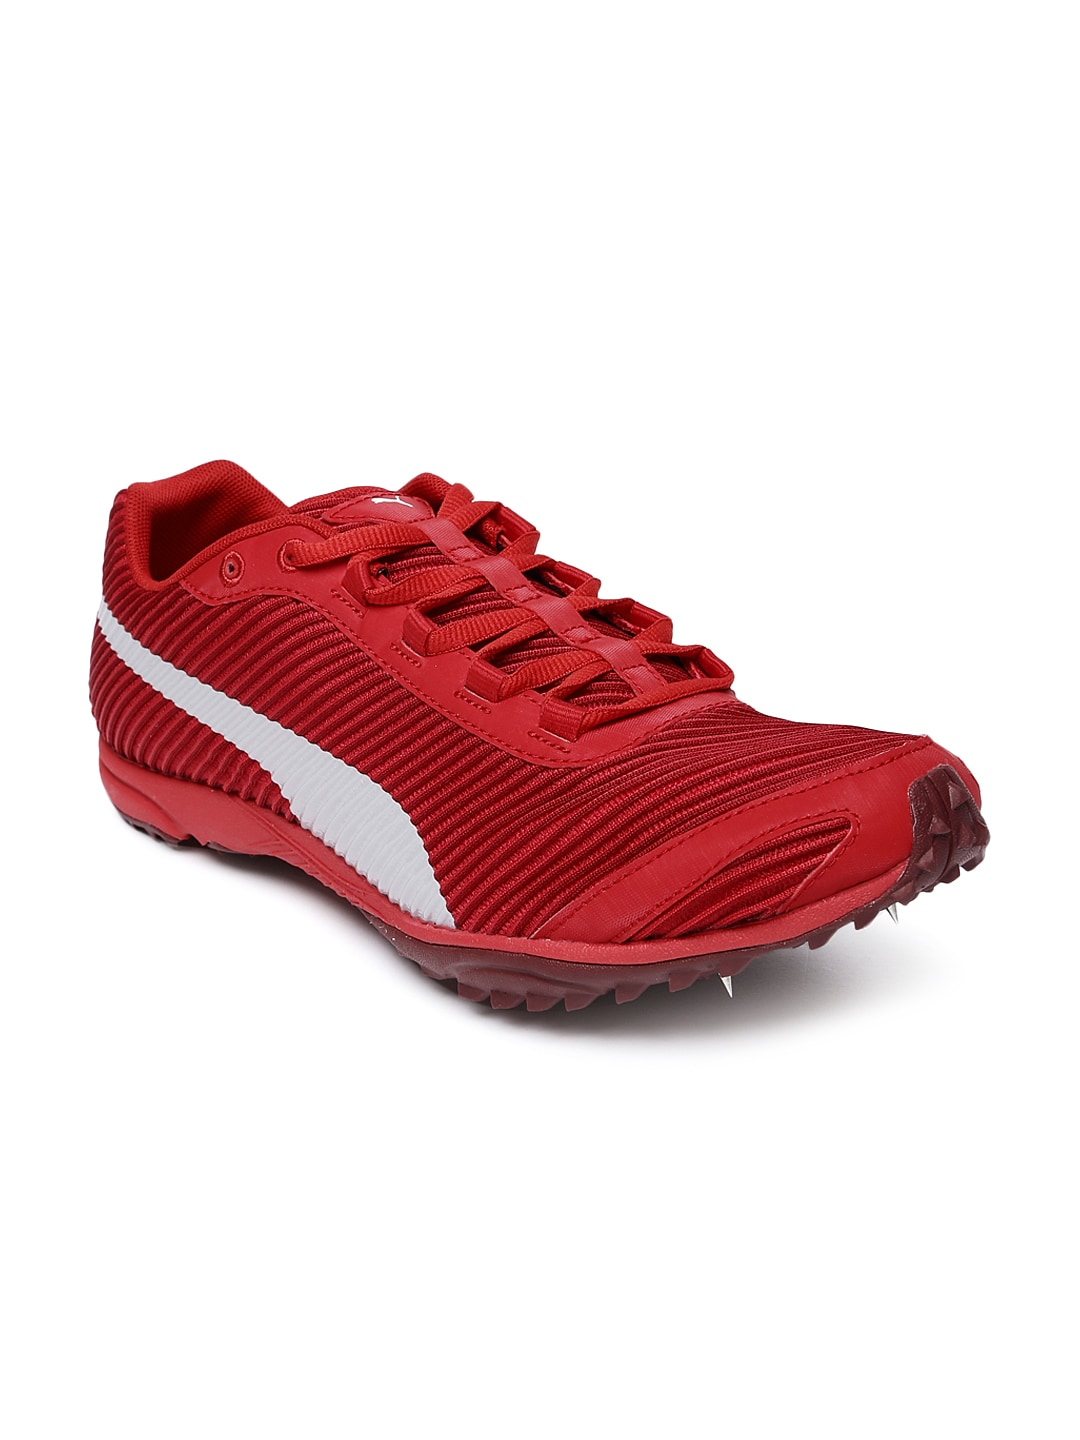 f142fbb61423 Puma Shoes - Buy Puma Shoes for Men   Women Online in India